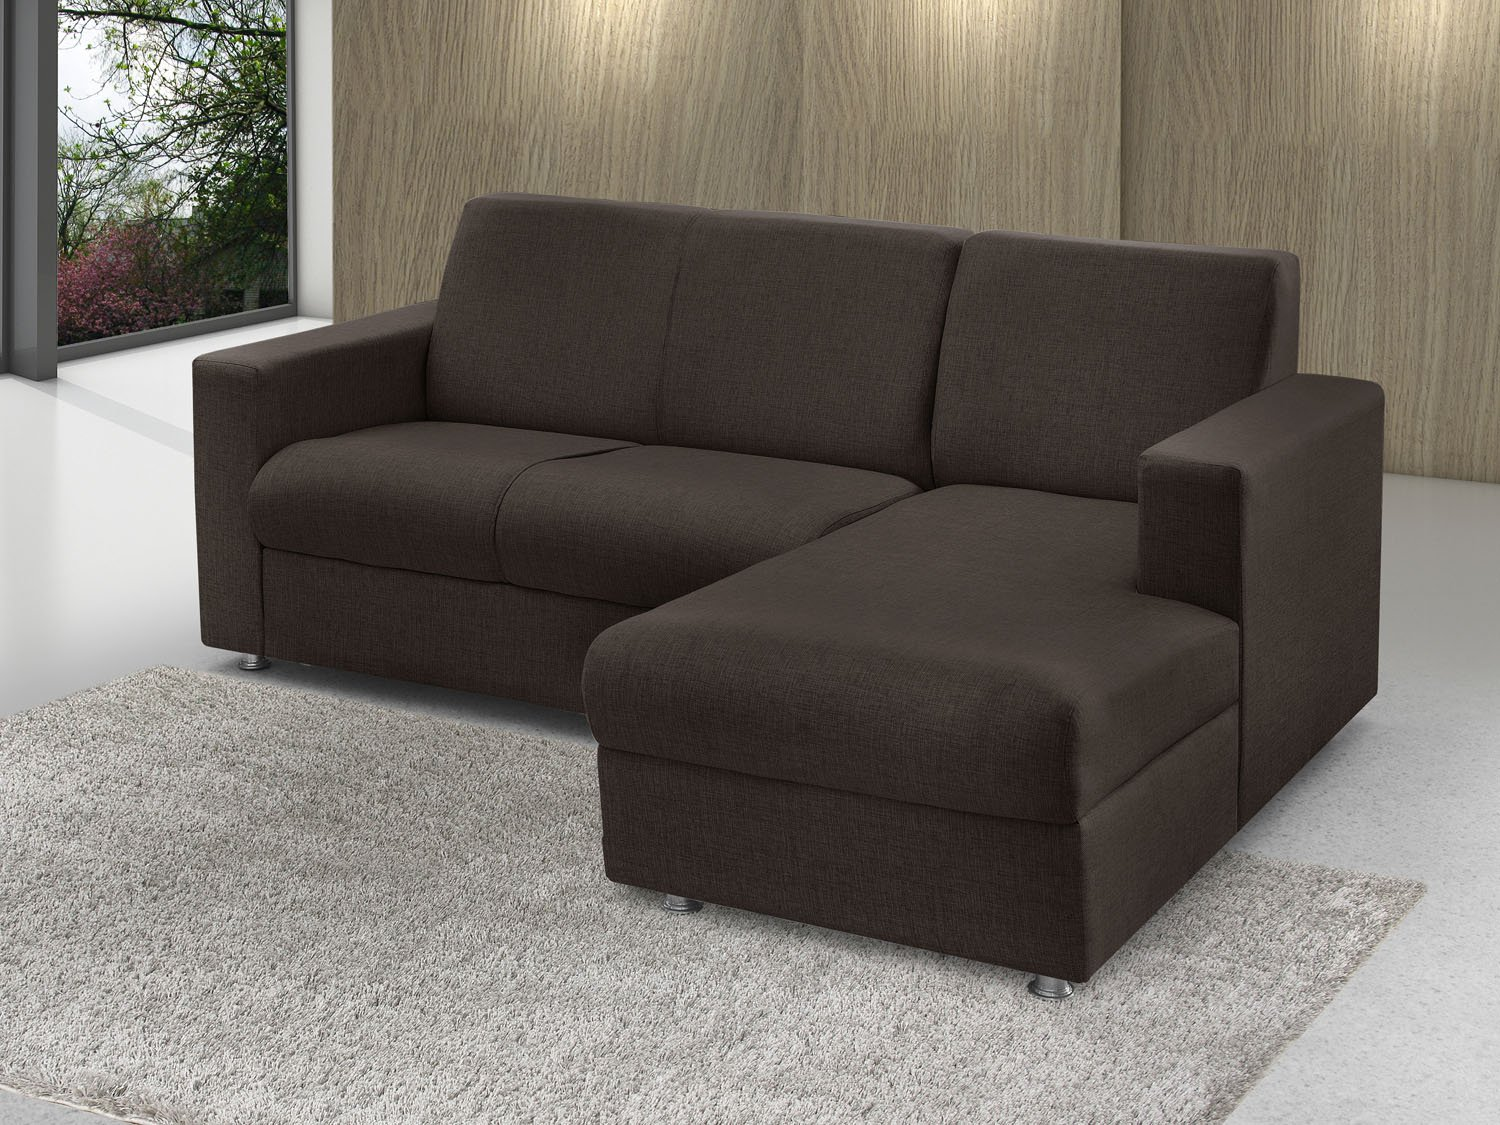 sof chaise 2 lugares chenille roma american comfort